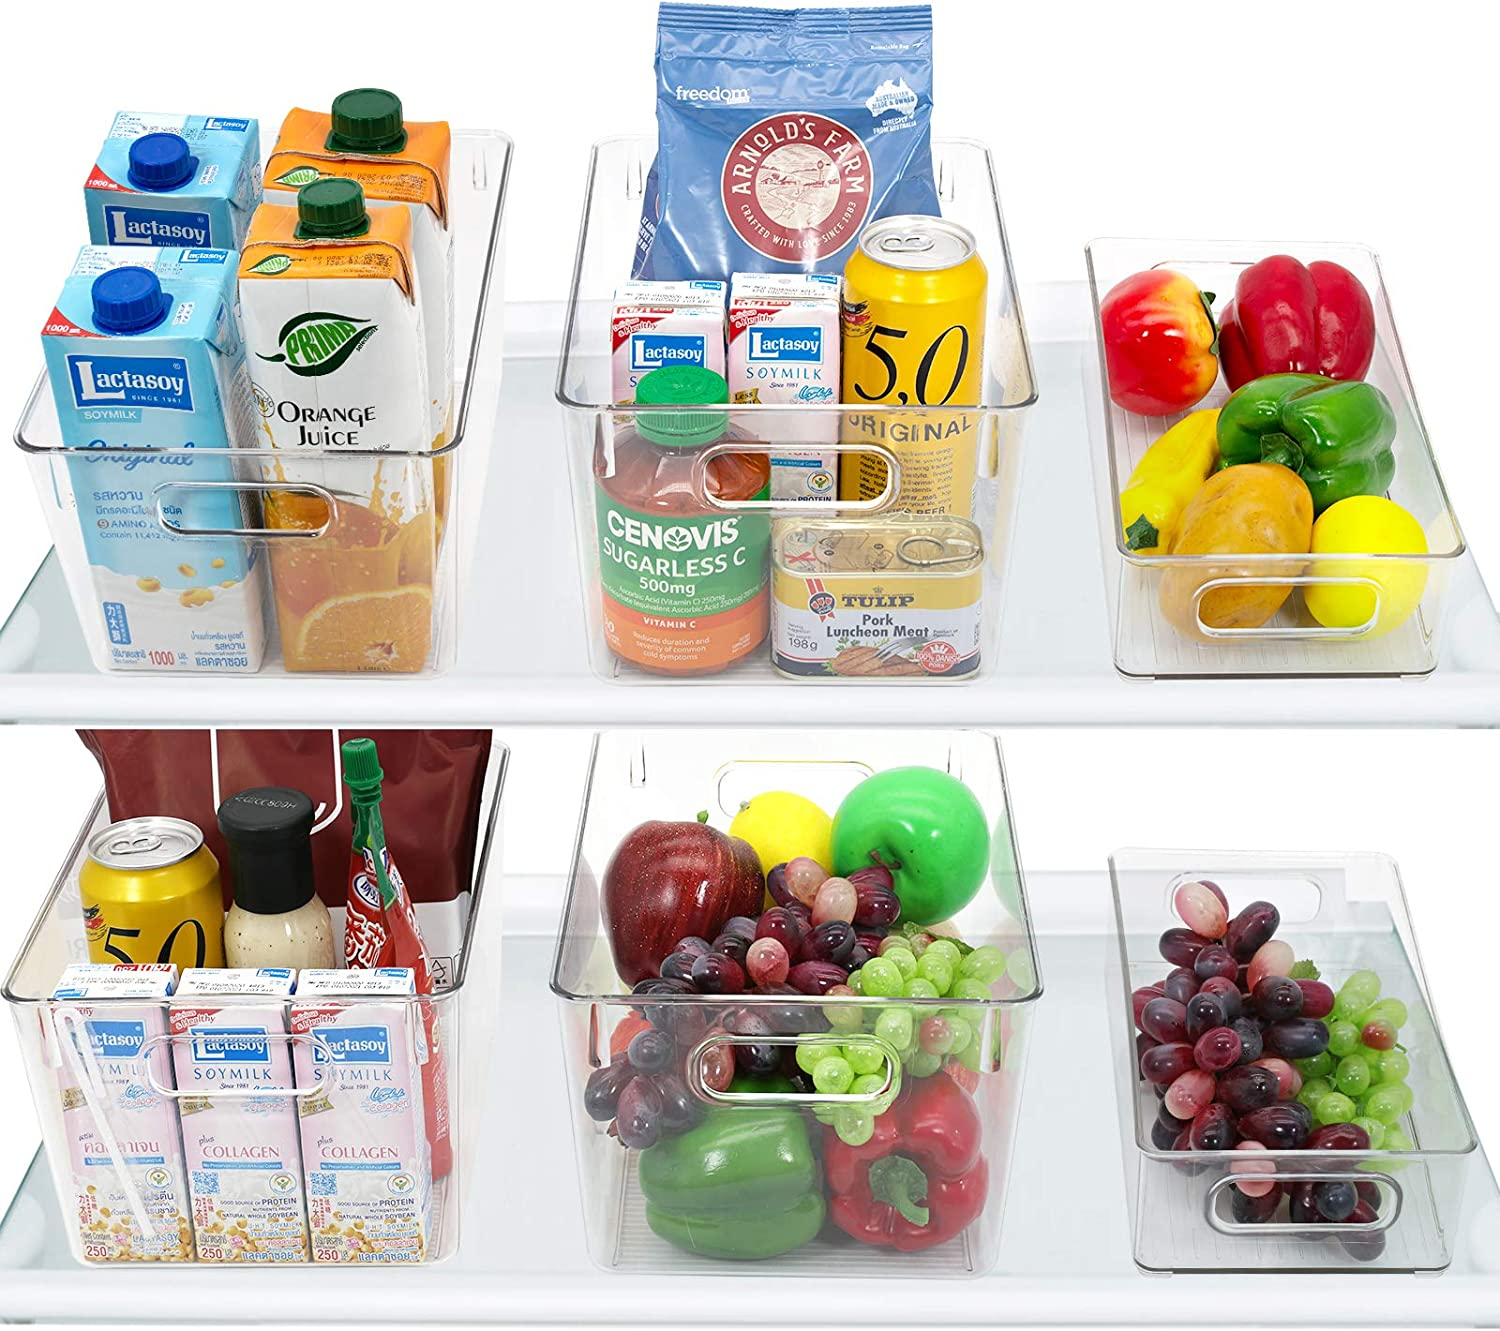 RMAI Fridge Organizer, 6 Pack Refrigerator Bins Kitchen Can Storage Container Pantry Organizers Clear Stackable Plastic Food Organization for Freezers, Cabinets, Refridge, Countertop, Cupboard